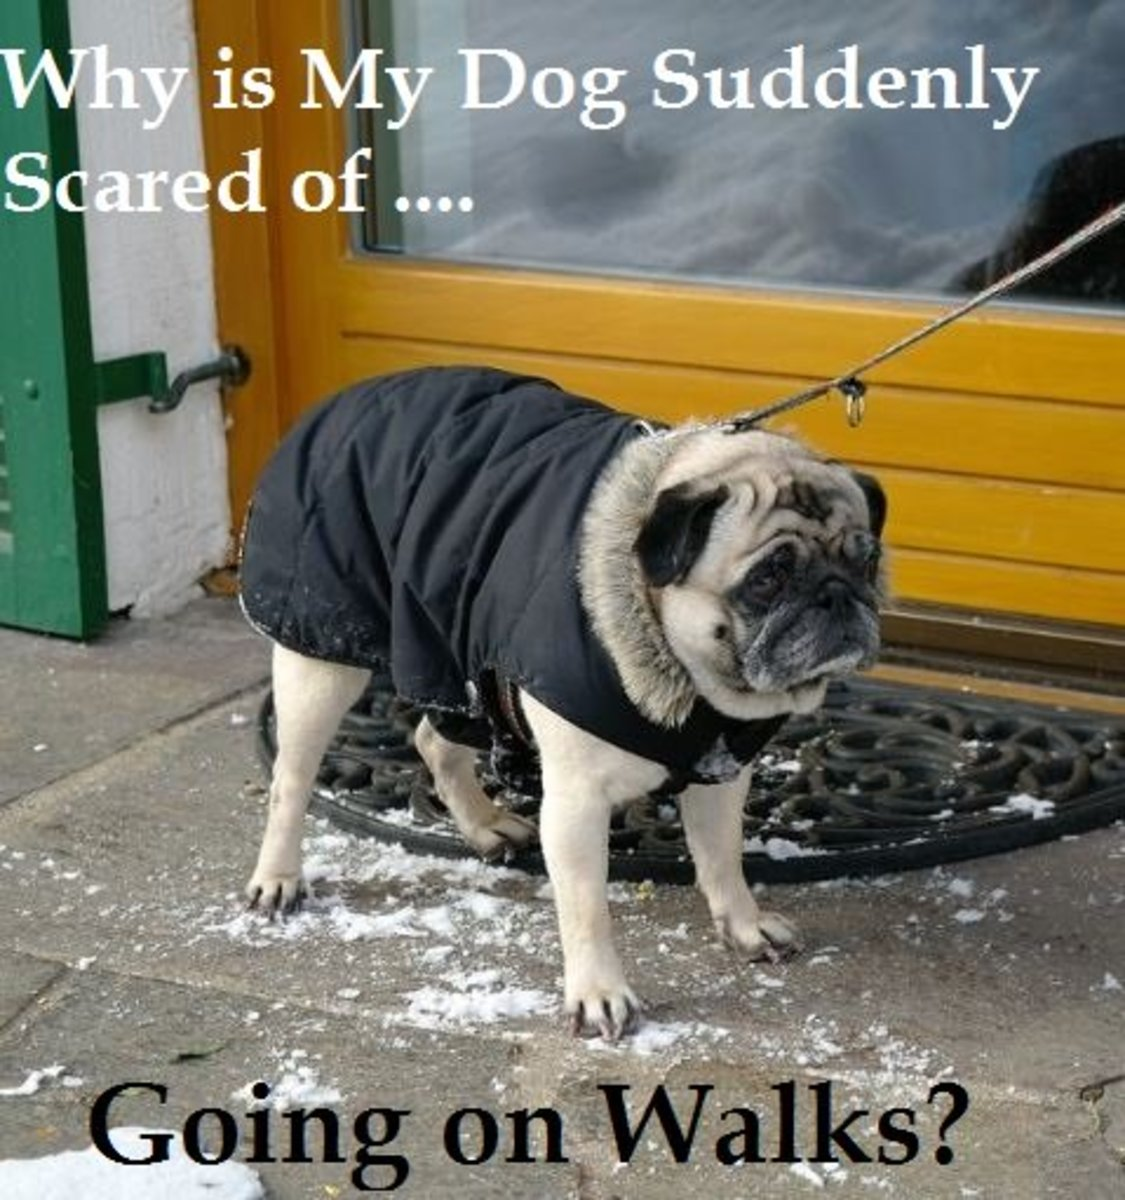 Why Is My Dog Suddenly Scared to Go on Walks?